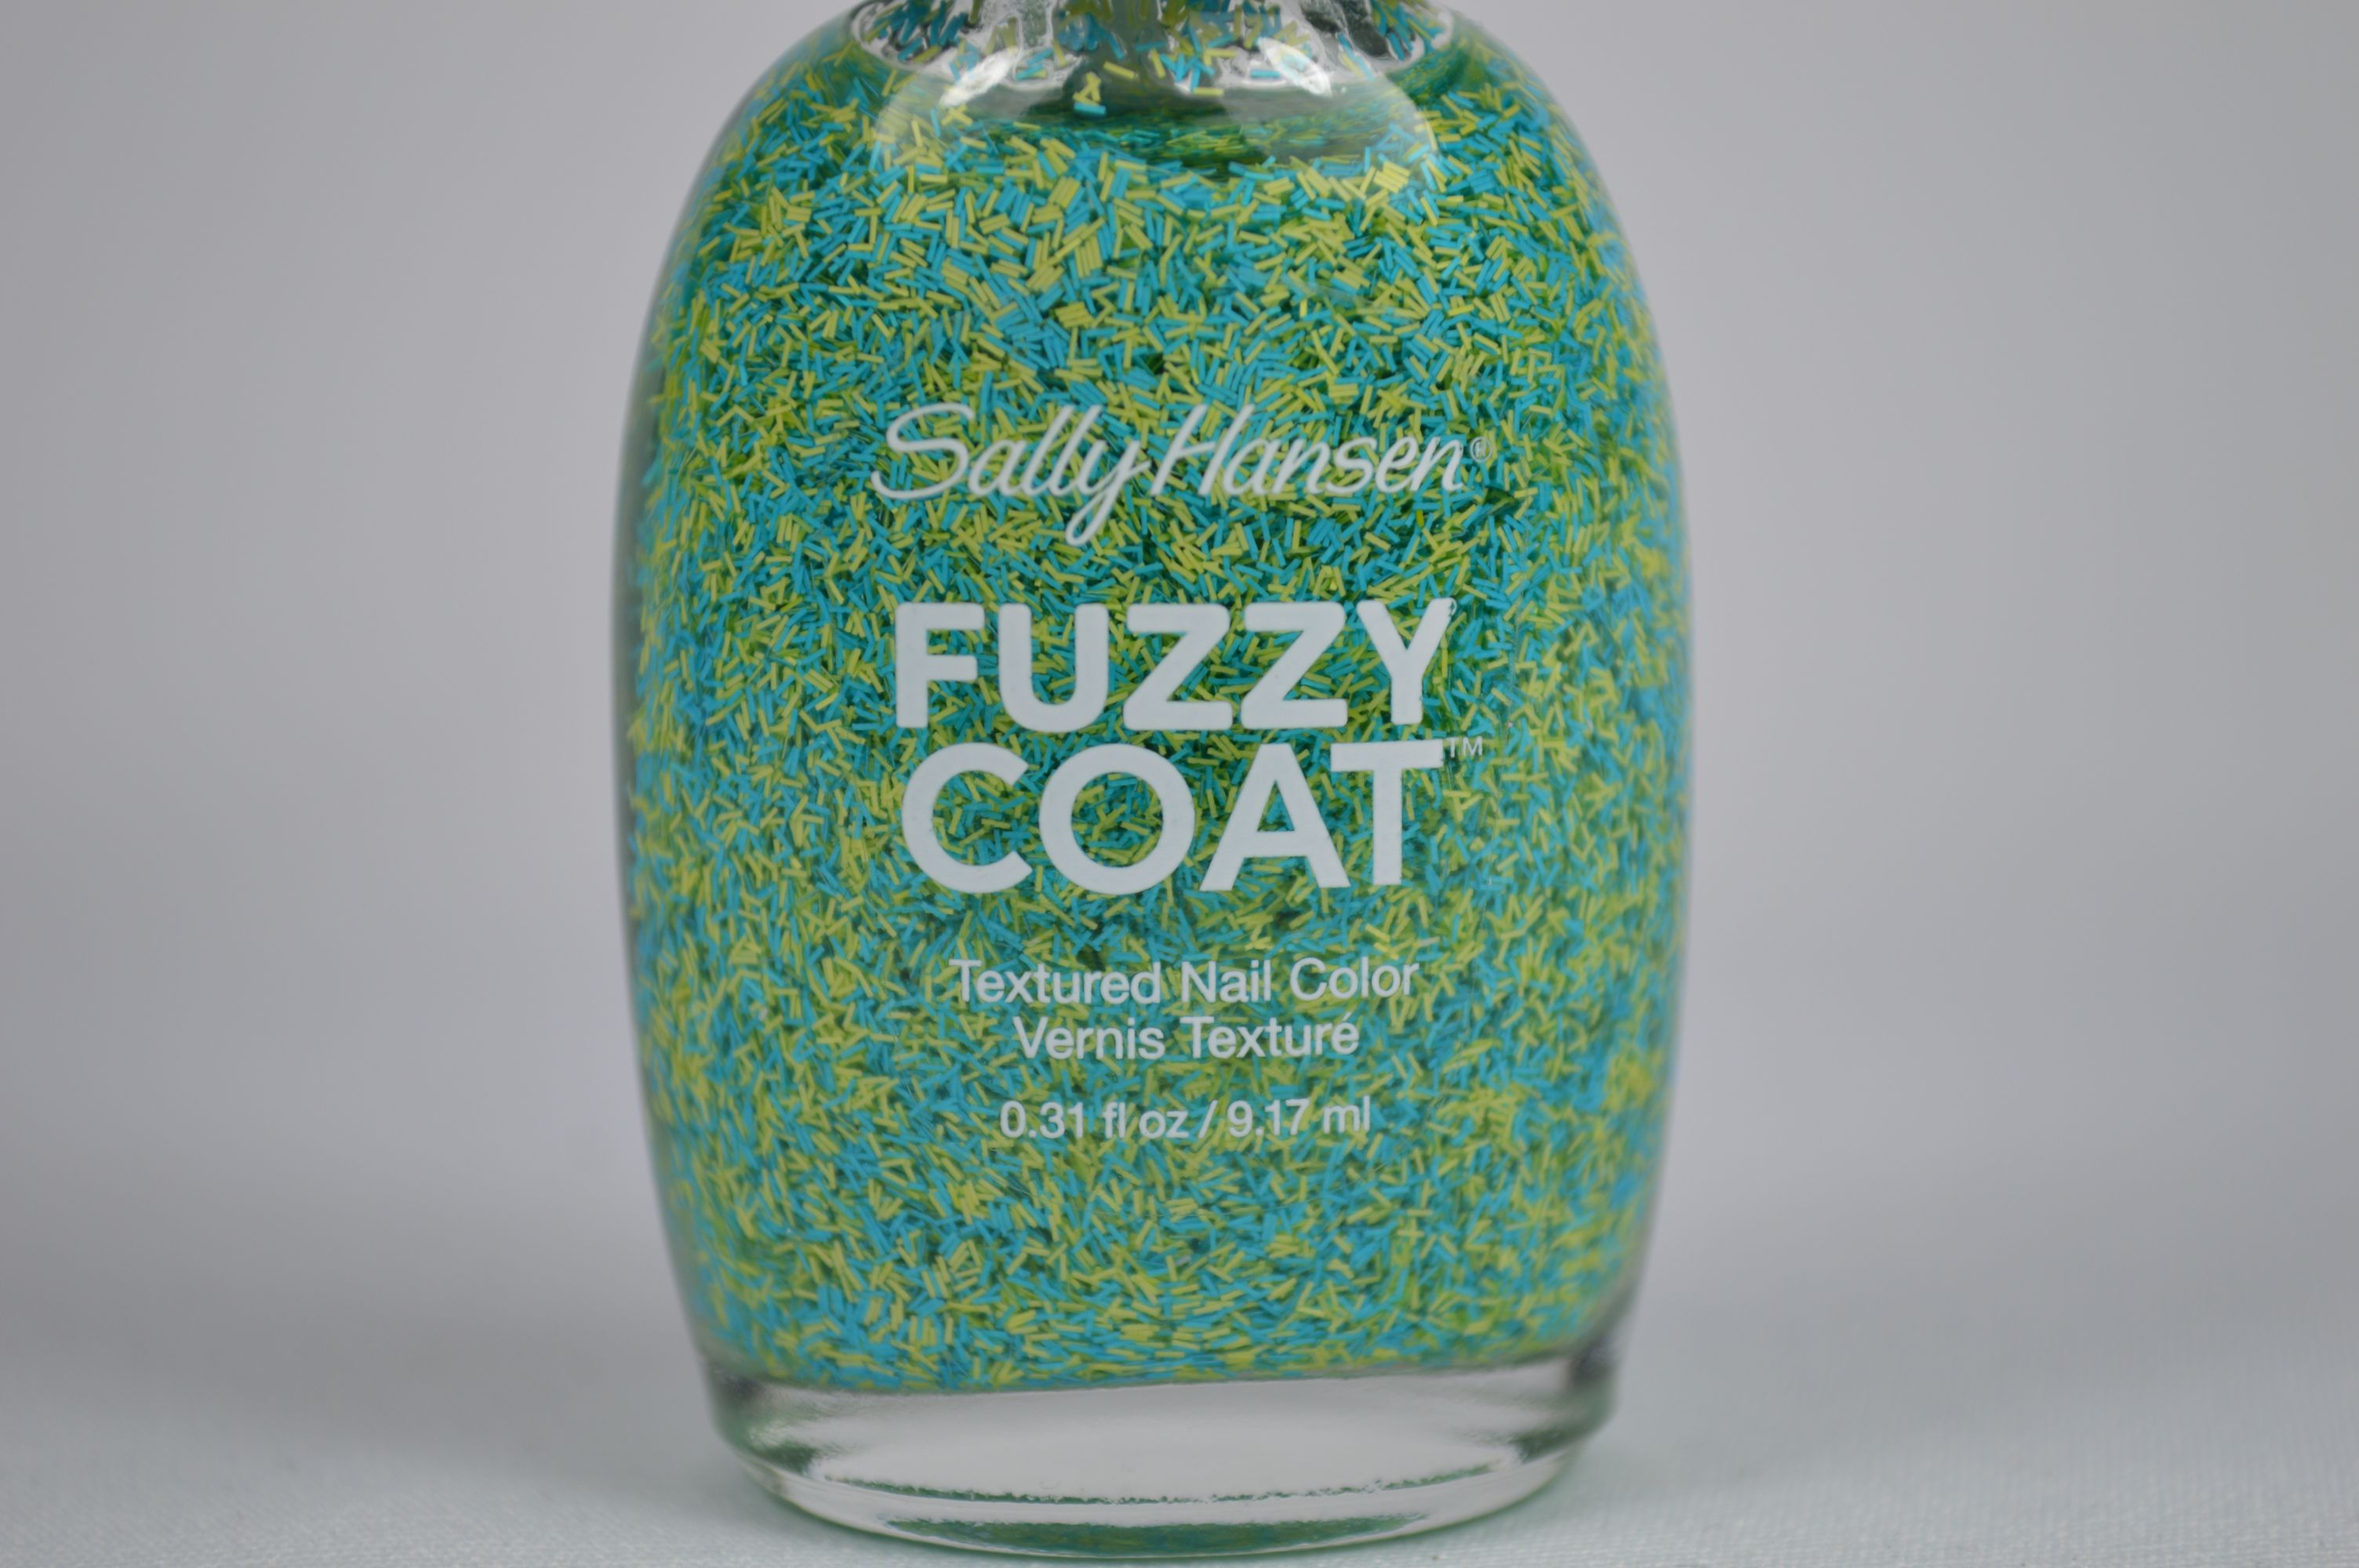 Sally Hansen Fuzzy Coat Fuzz-Sea